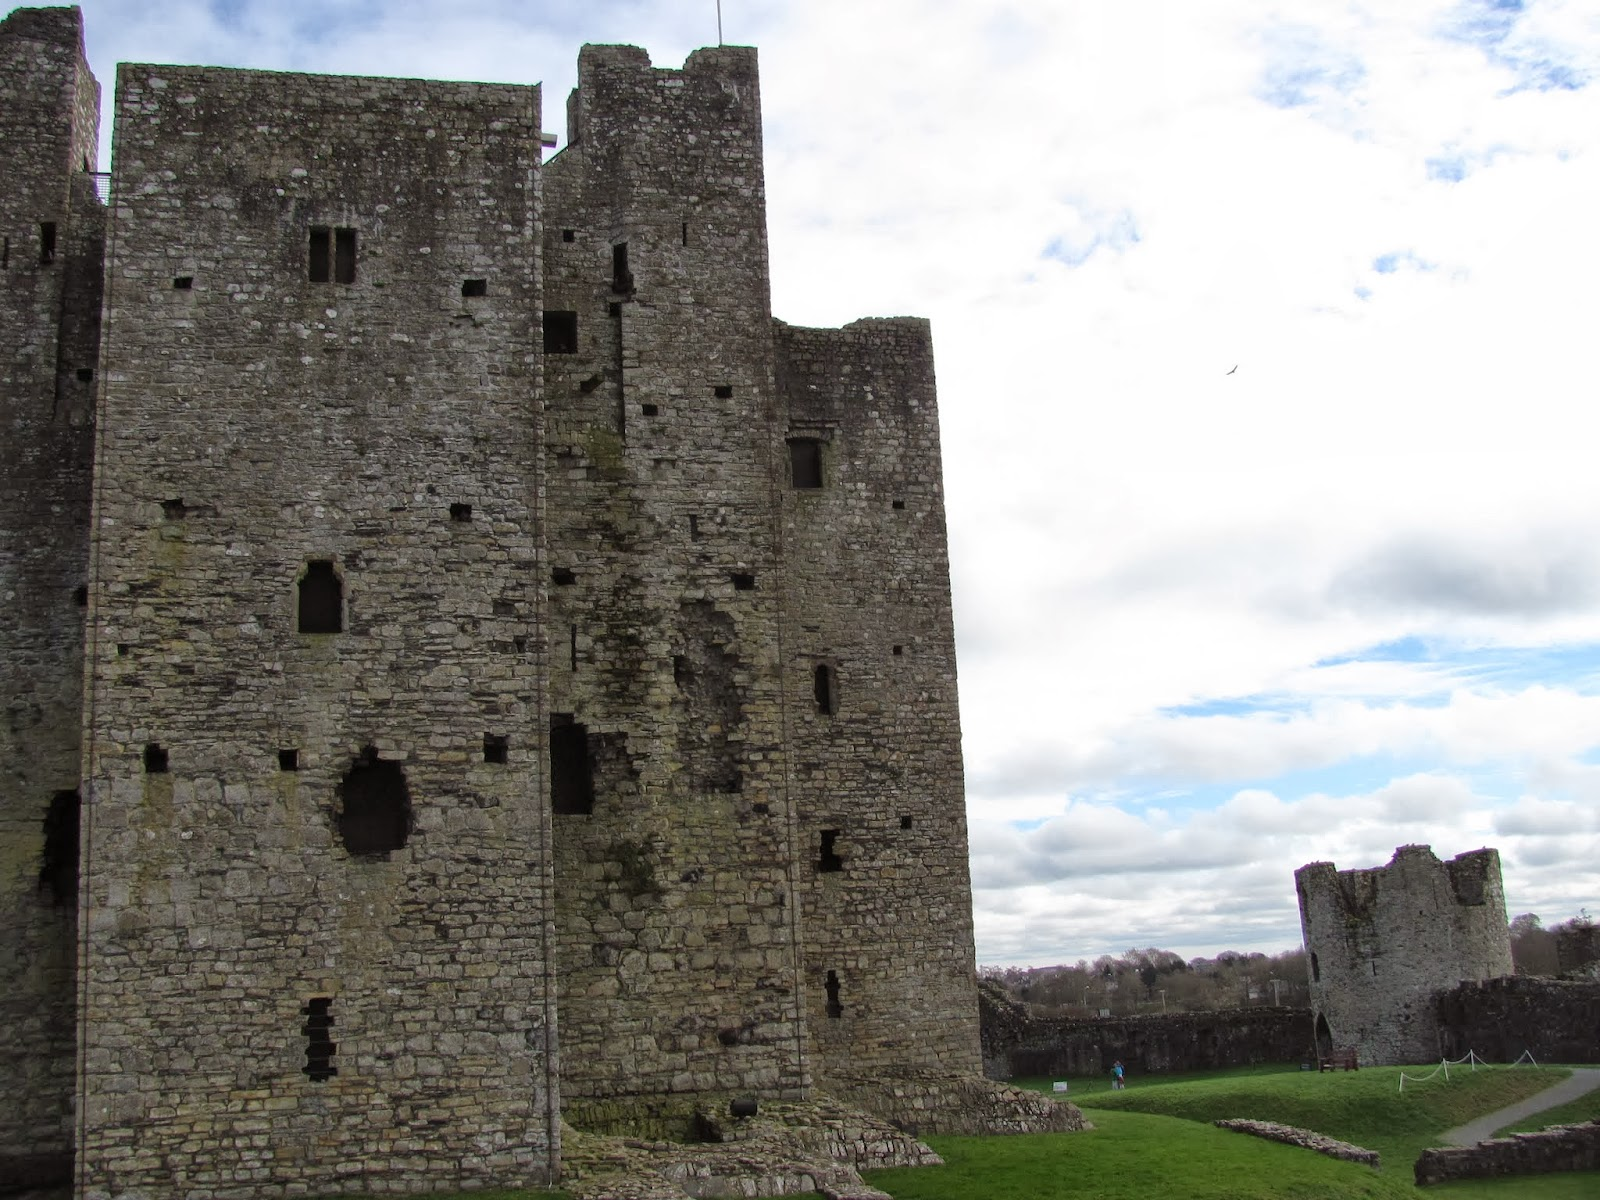 Angled Batter Walls at Trim Castle, Trim, Ireland